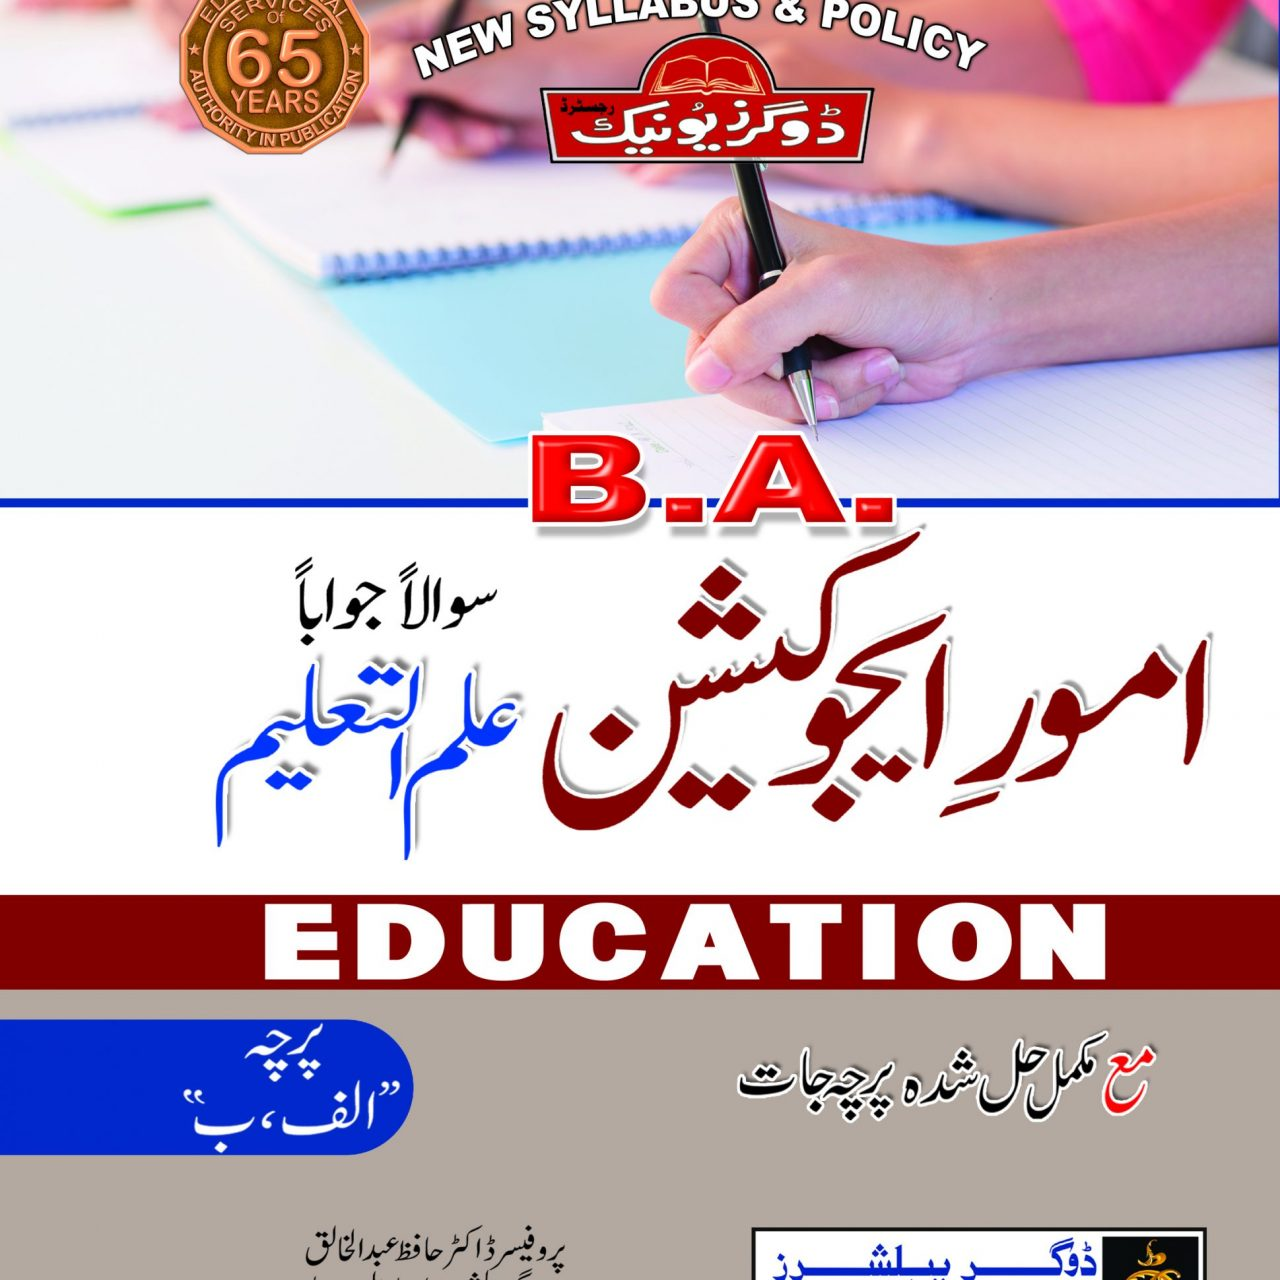 Aamor-E-Education B.A